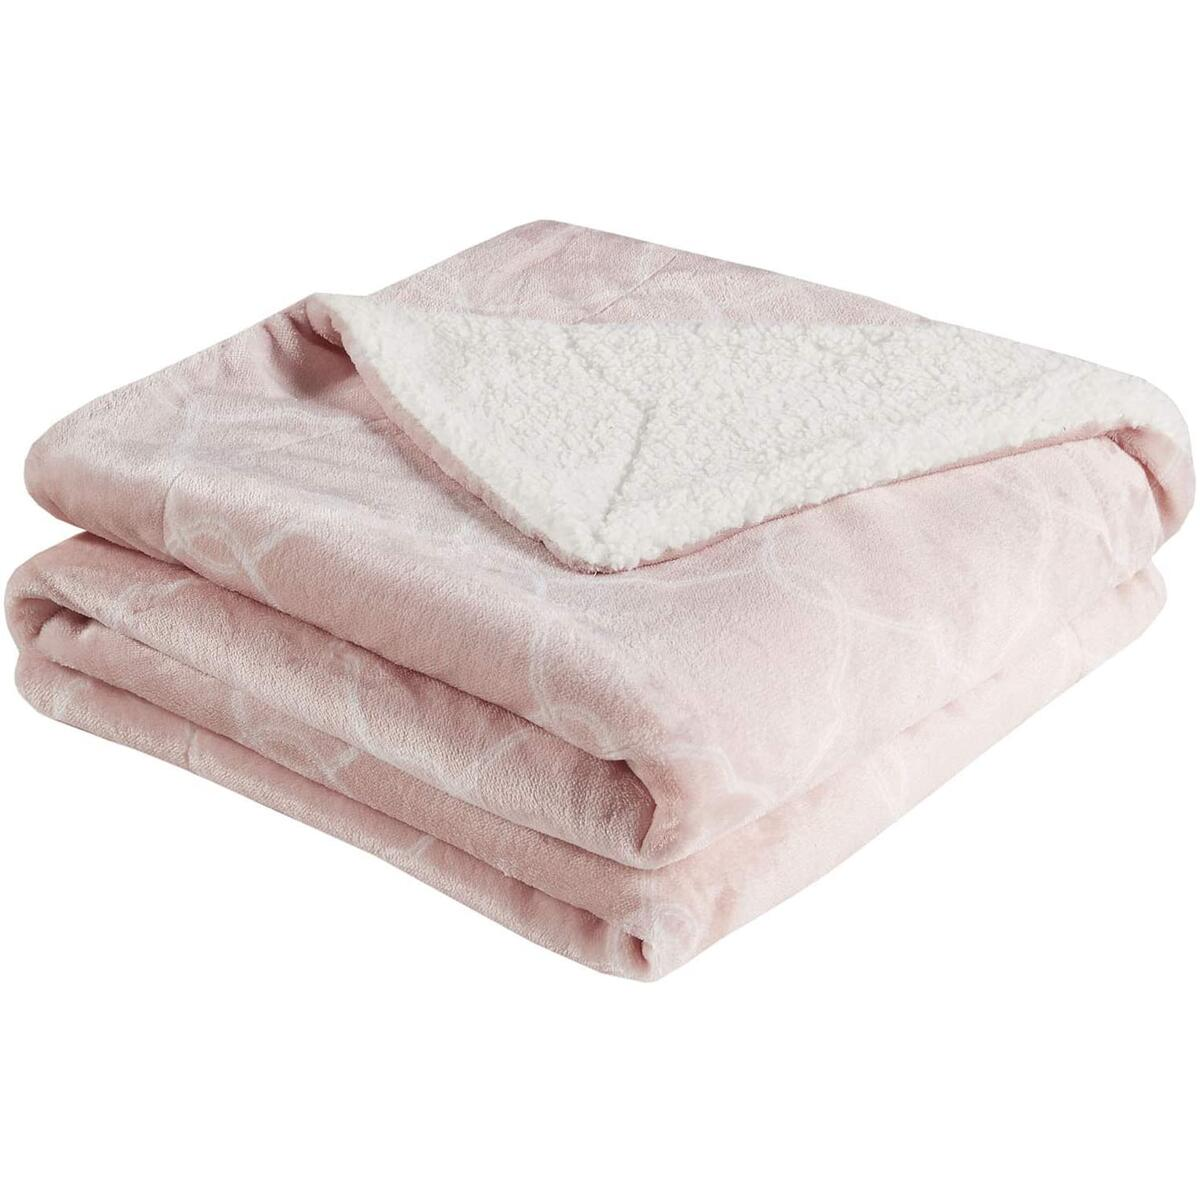 Soft Cozy Fleece Sherpa Pink Throw Blanket, Fuzzy Plush Flannel Blanket for Sofa, Couch, Bed, Travel - 50x60 Inches, Pink Ogee